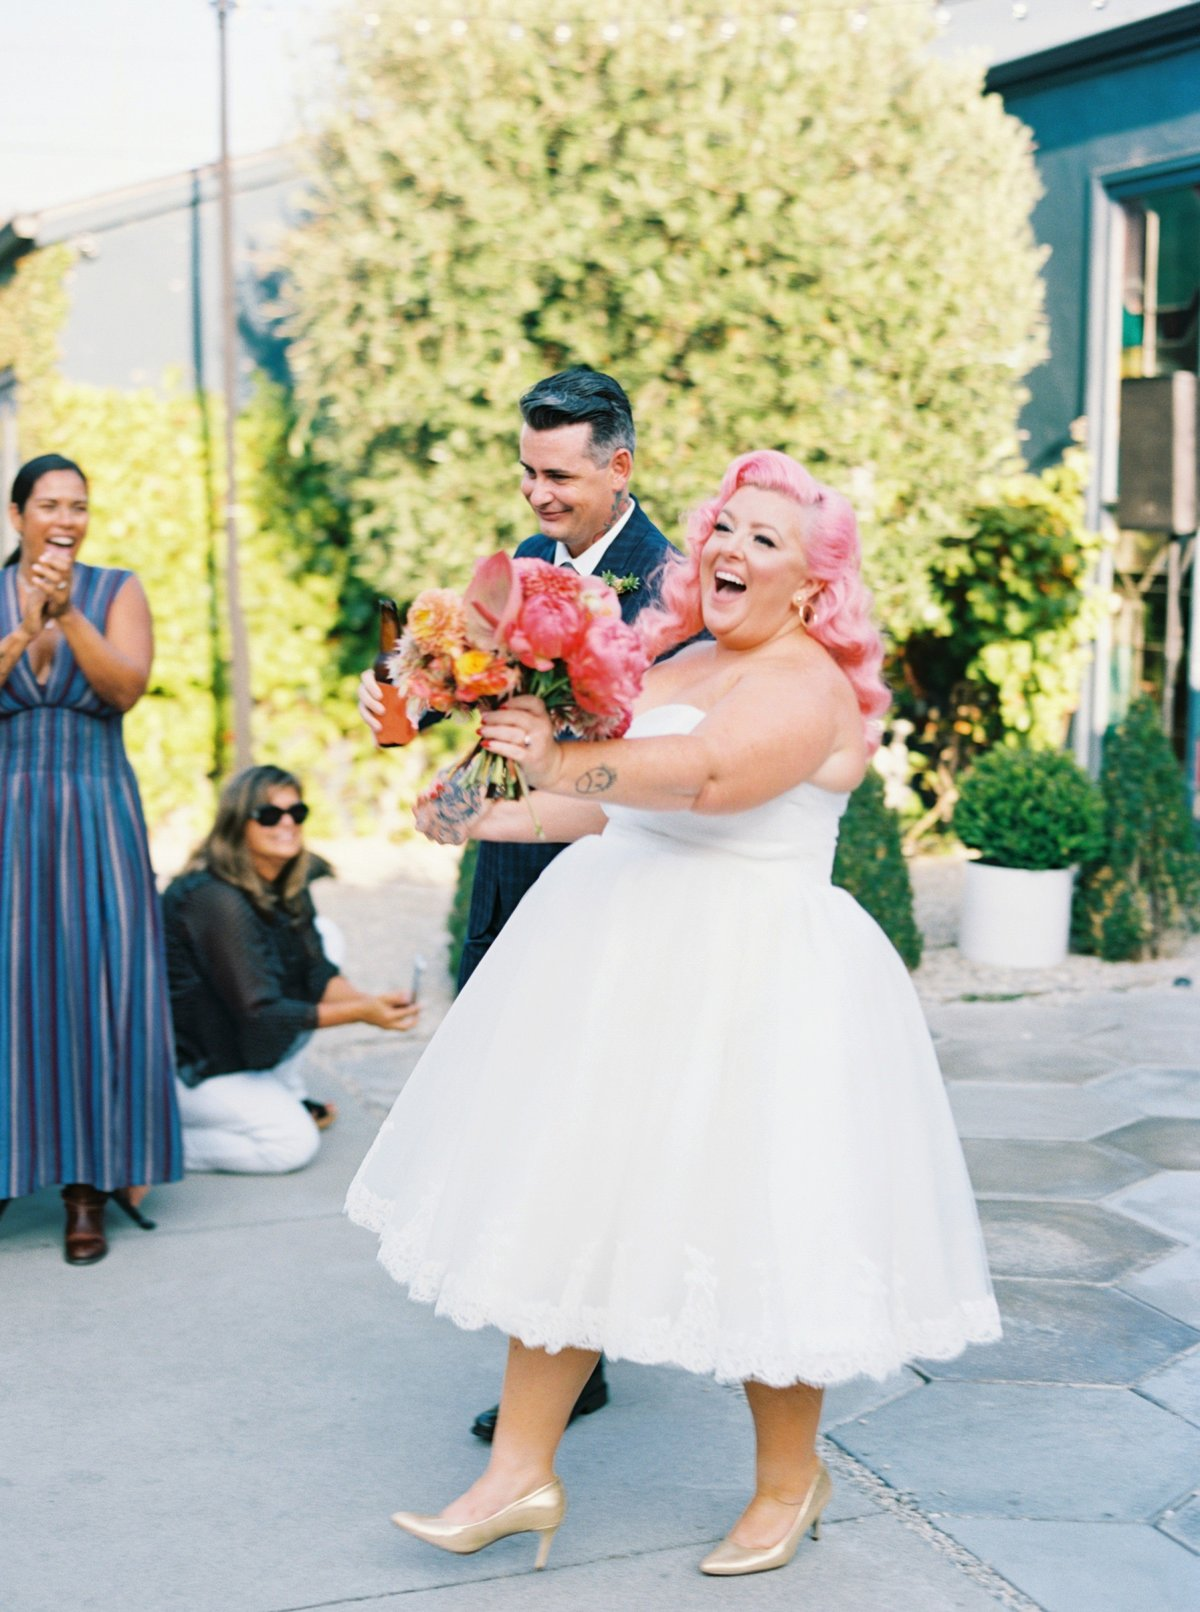 nicoleclareyphotography_jenn+pete_los-angeles_wedding_0041